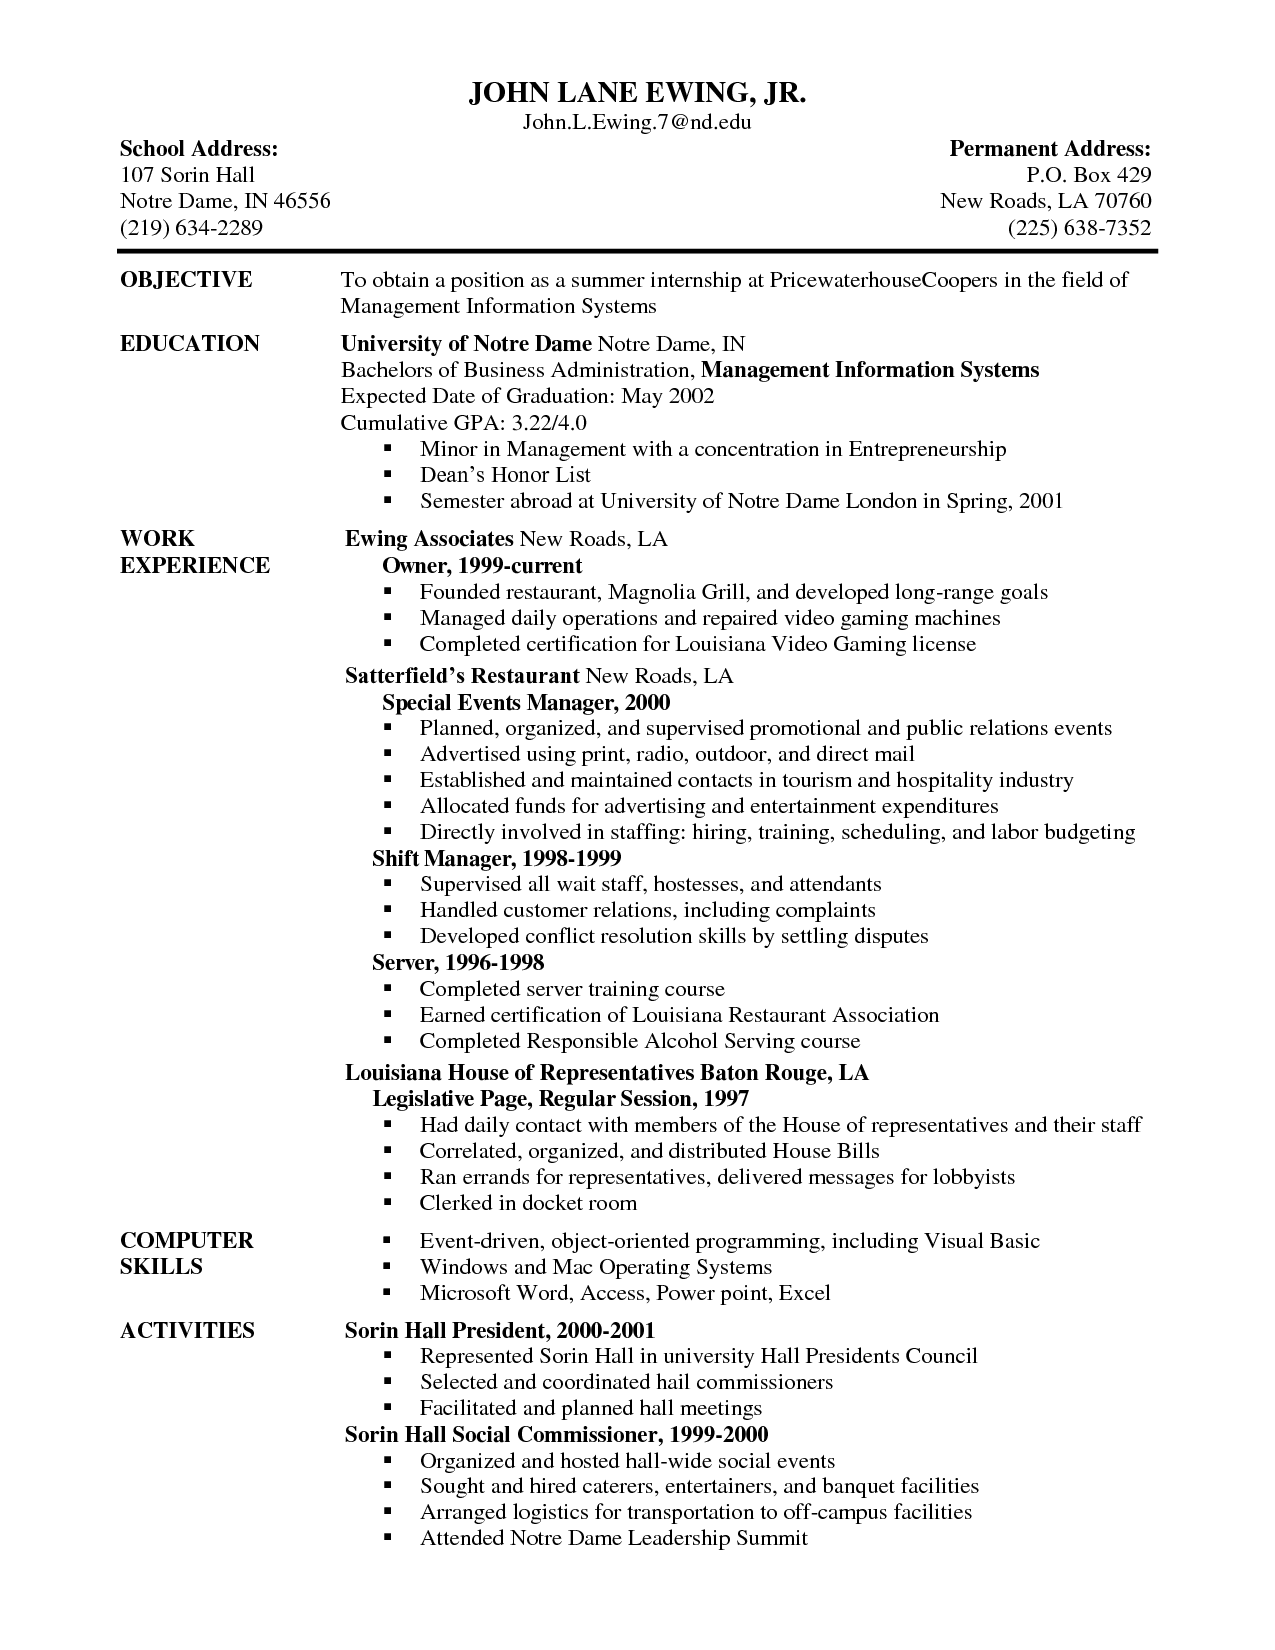 Server Resume Template Free Amazing Server Resume Skills Template Doc Serving Job Examples Description